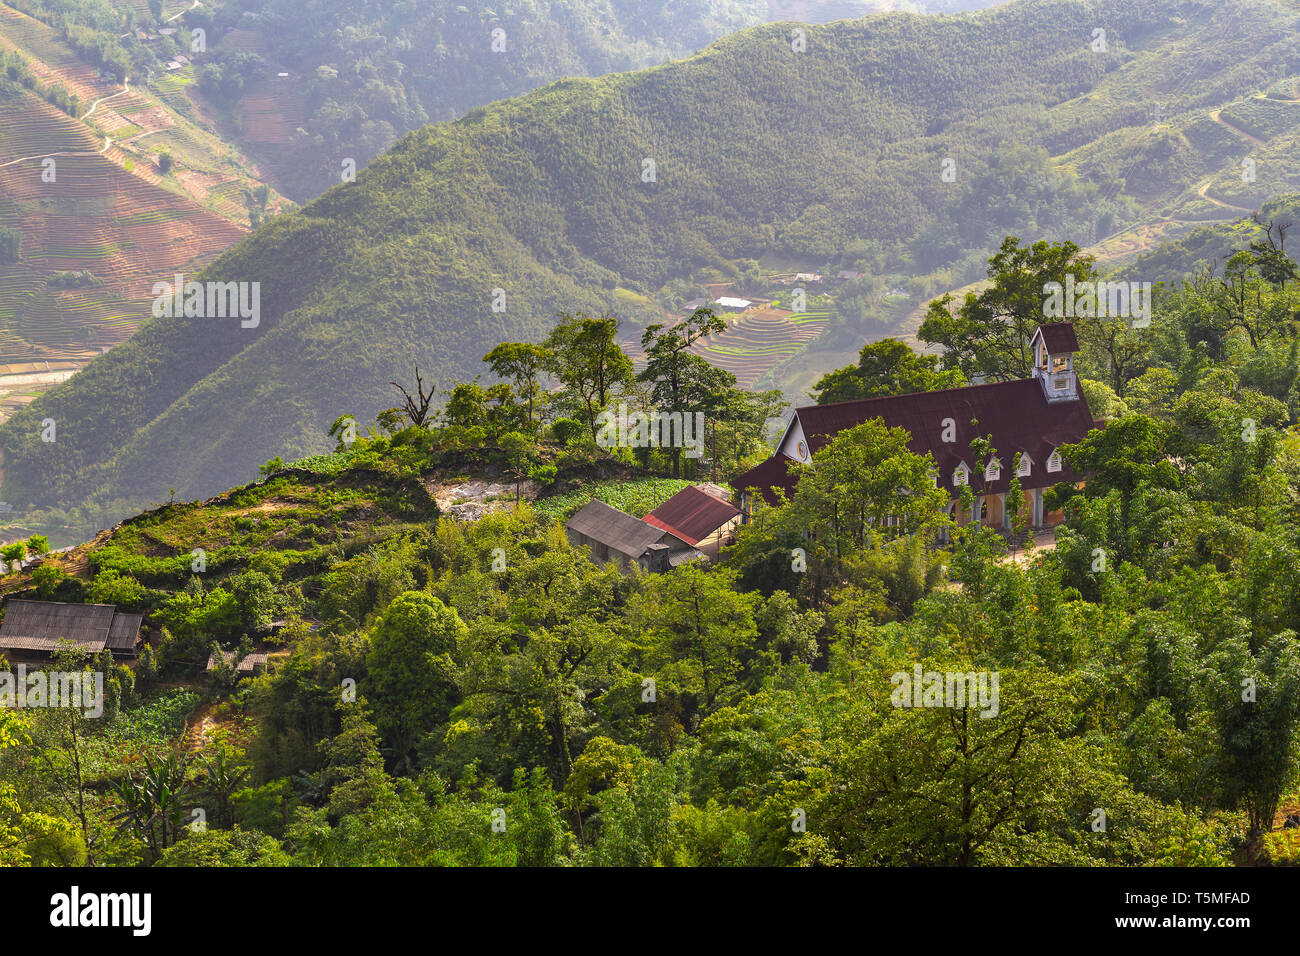 School house sitting on top of mountain in rural SaPa, Vietnam, Asia - Stock Image